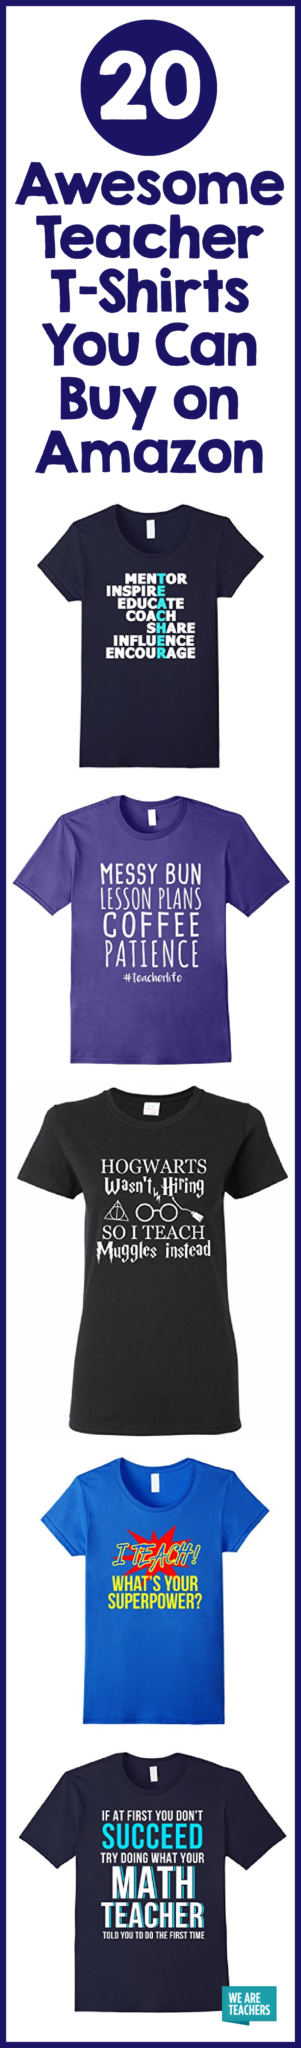 79a6654b2fea 20 Awesome T-Shirts For Teachers You Can Buy (on Amazon)